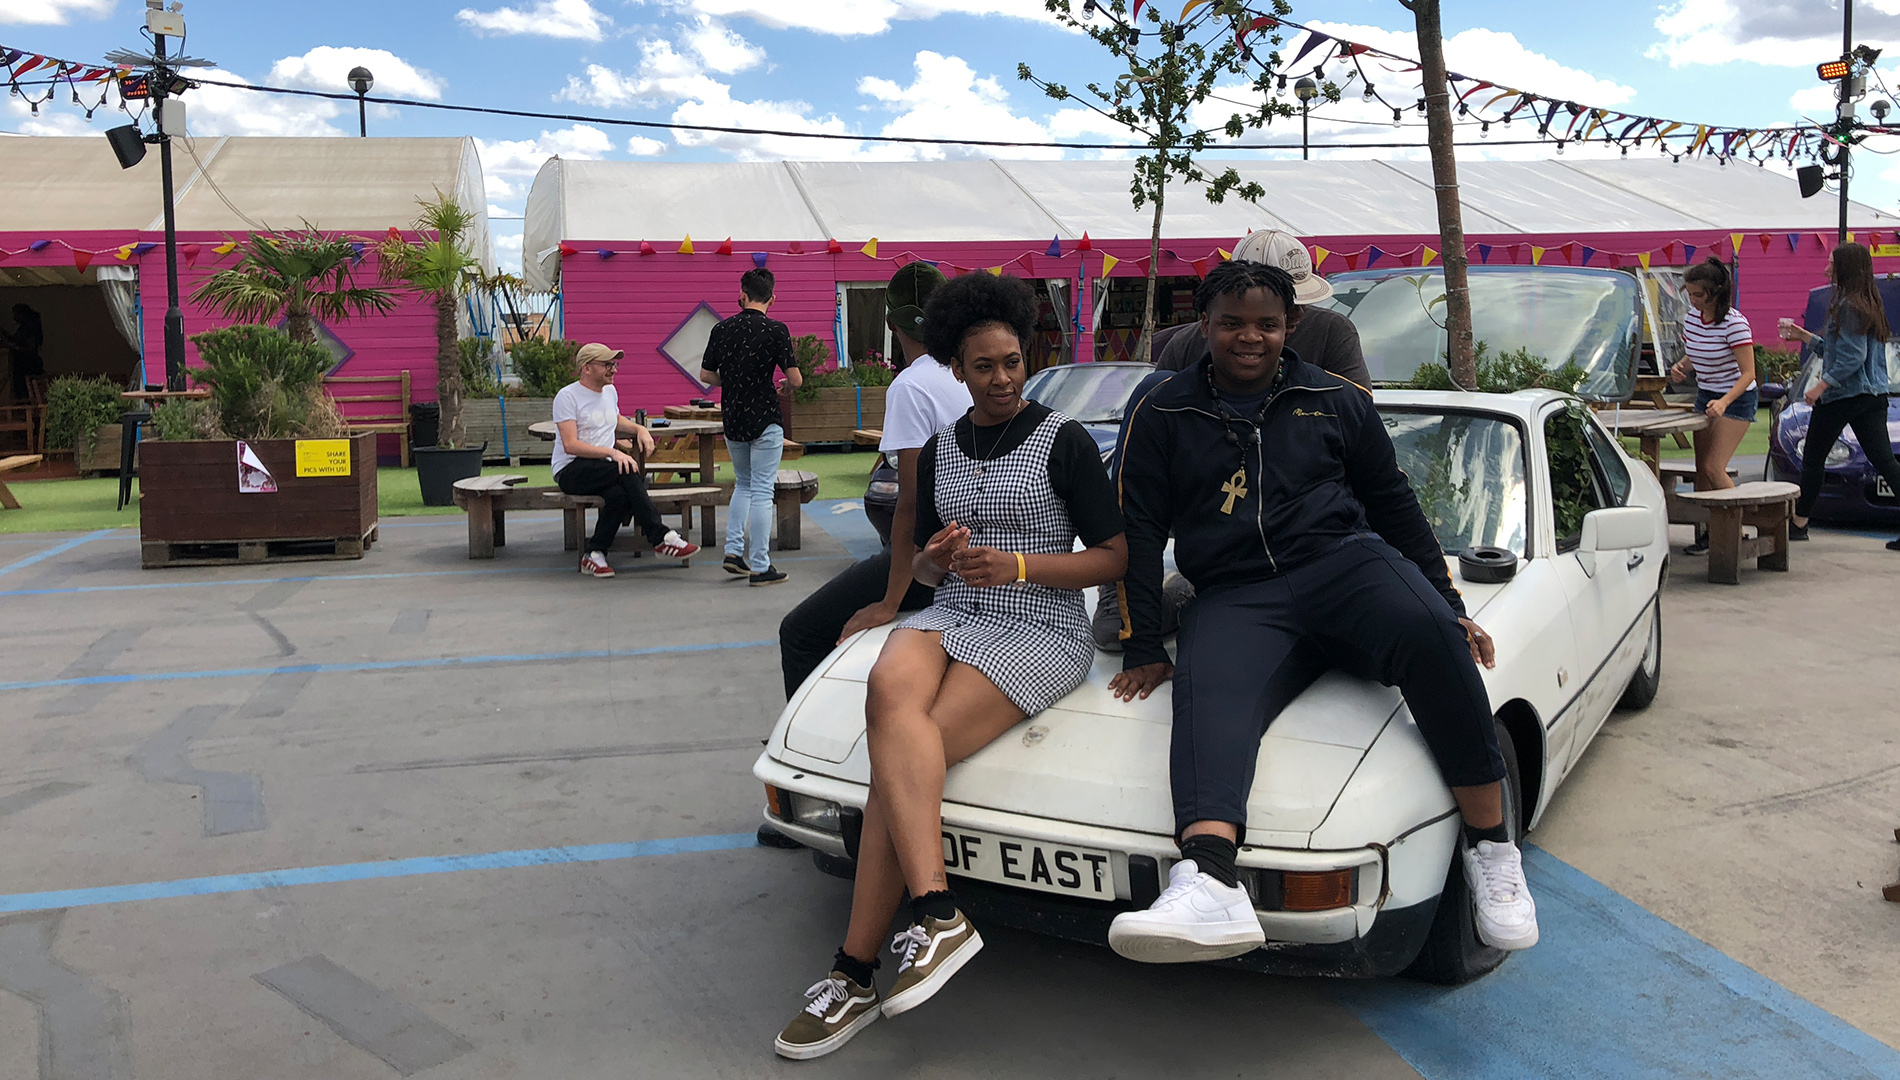 Young people from Groundwork's Peckham Studios music project sitting on car at Roof East